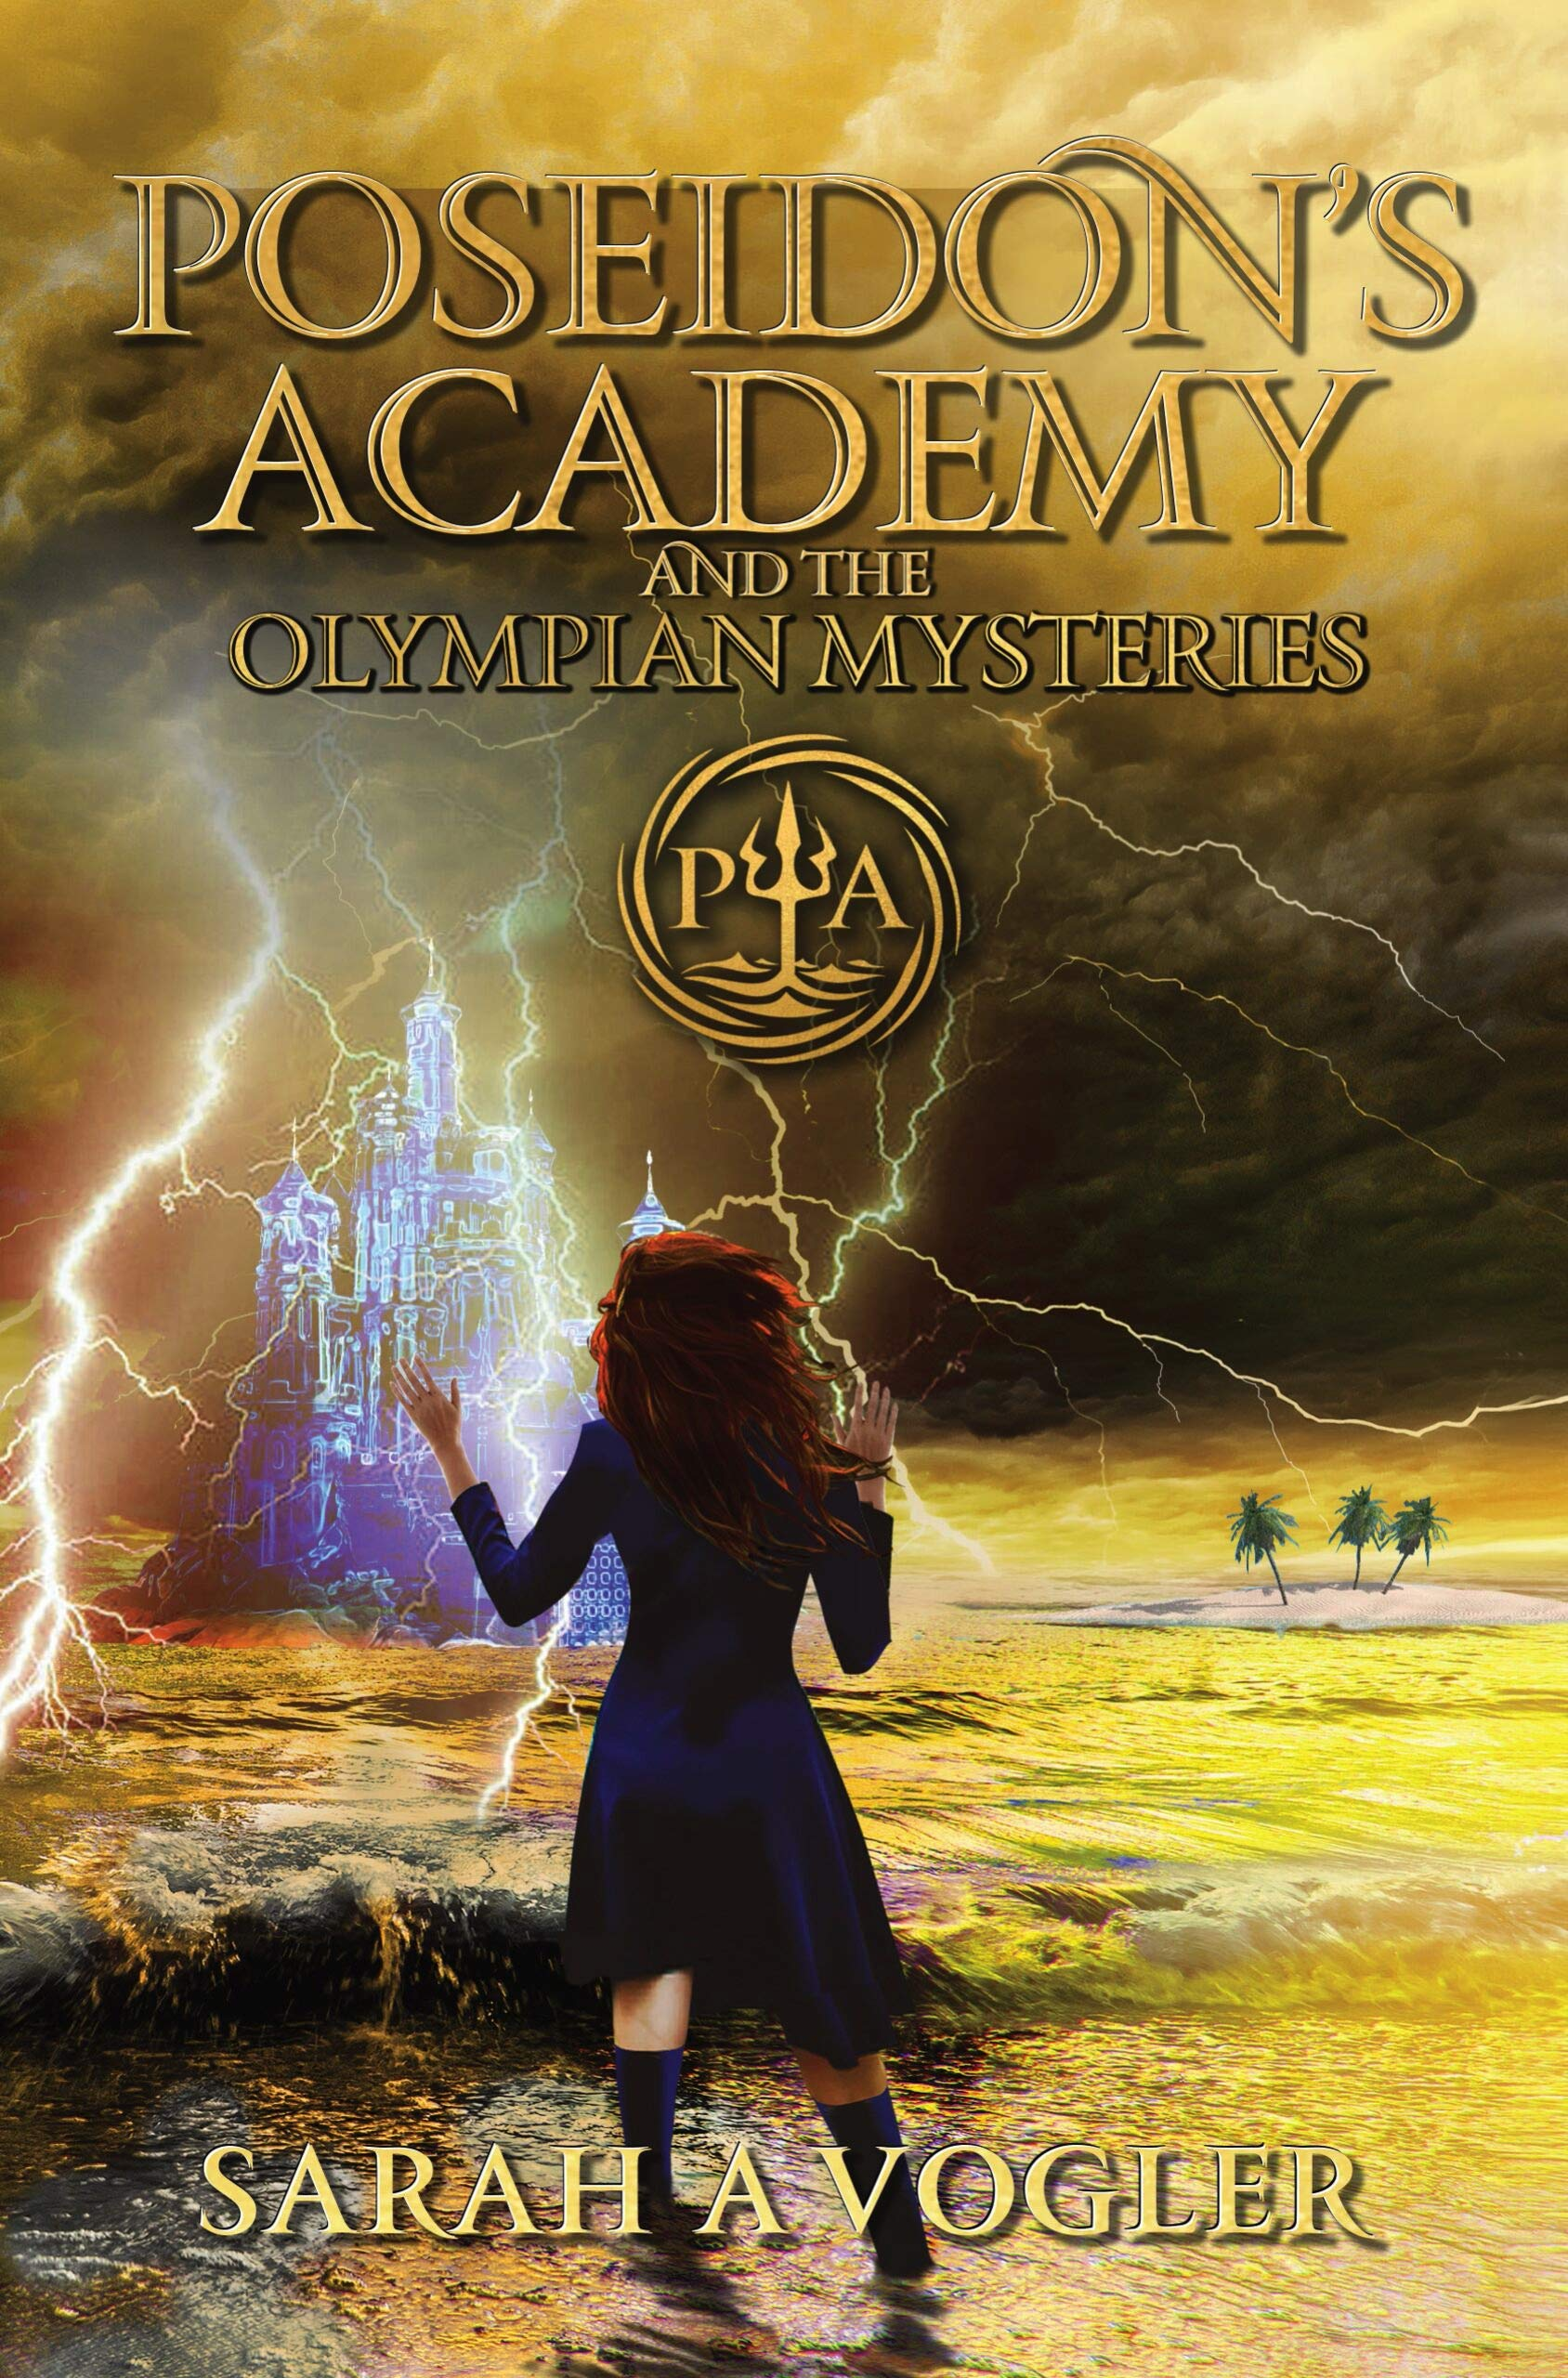 Poseidon's Academy and the Olympian Mysteries: A Middle Grade Fantasy Series